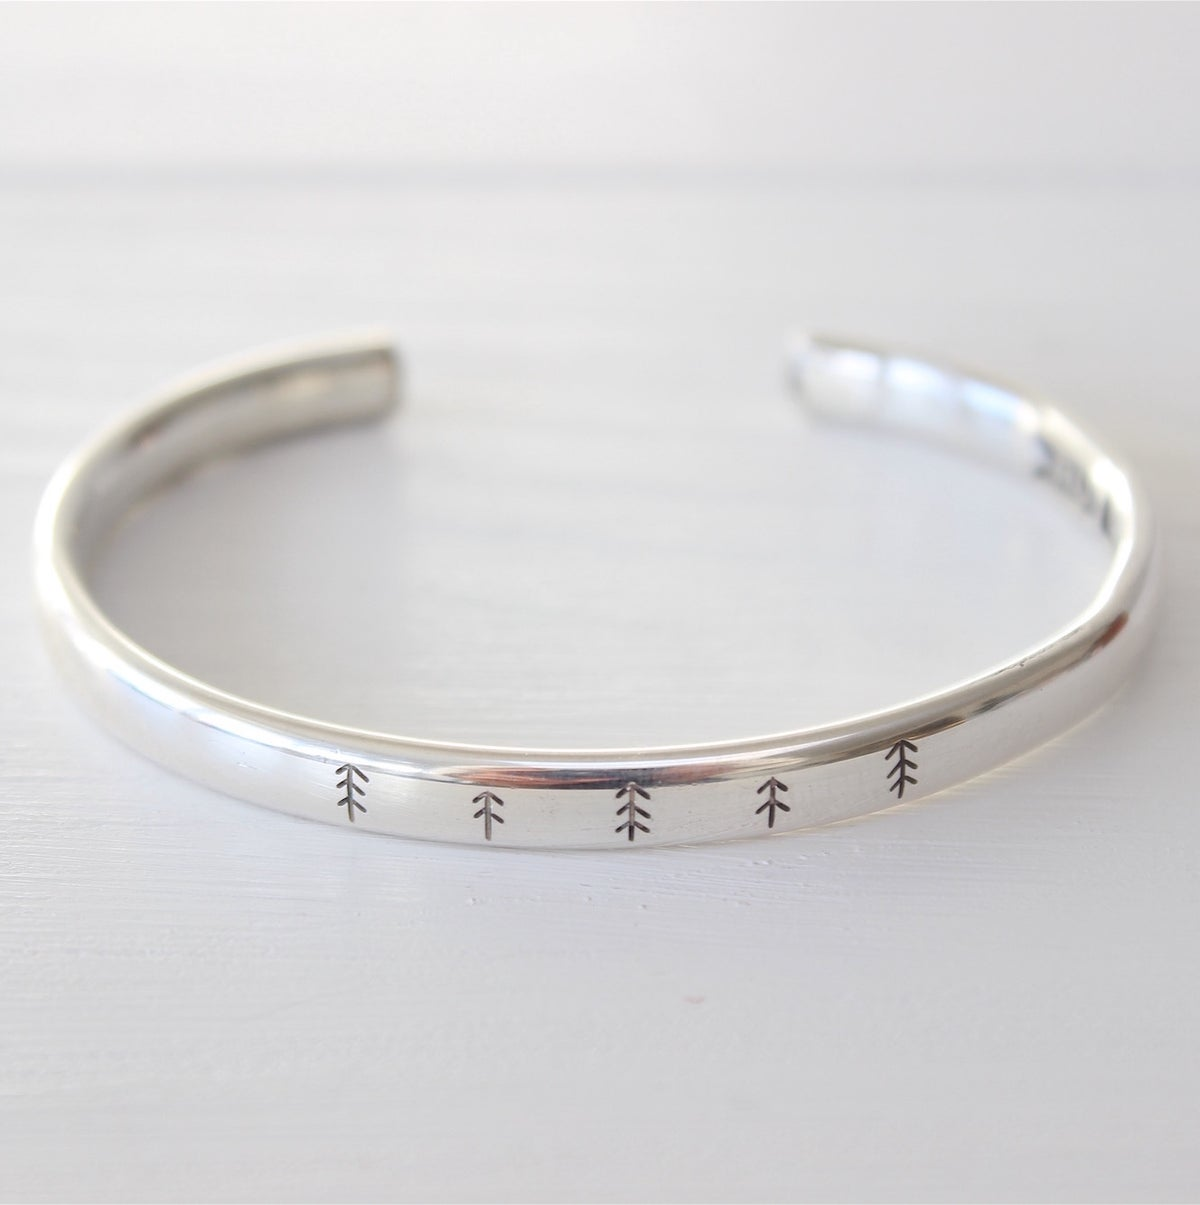 Image of men's spruce bangle (medium weight)